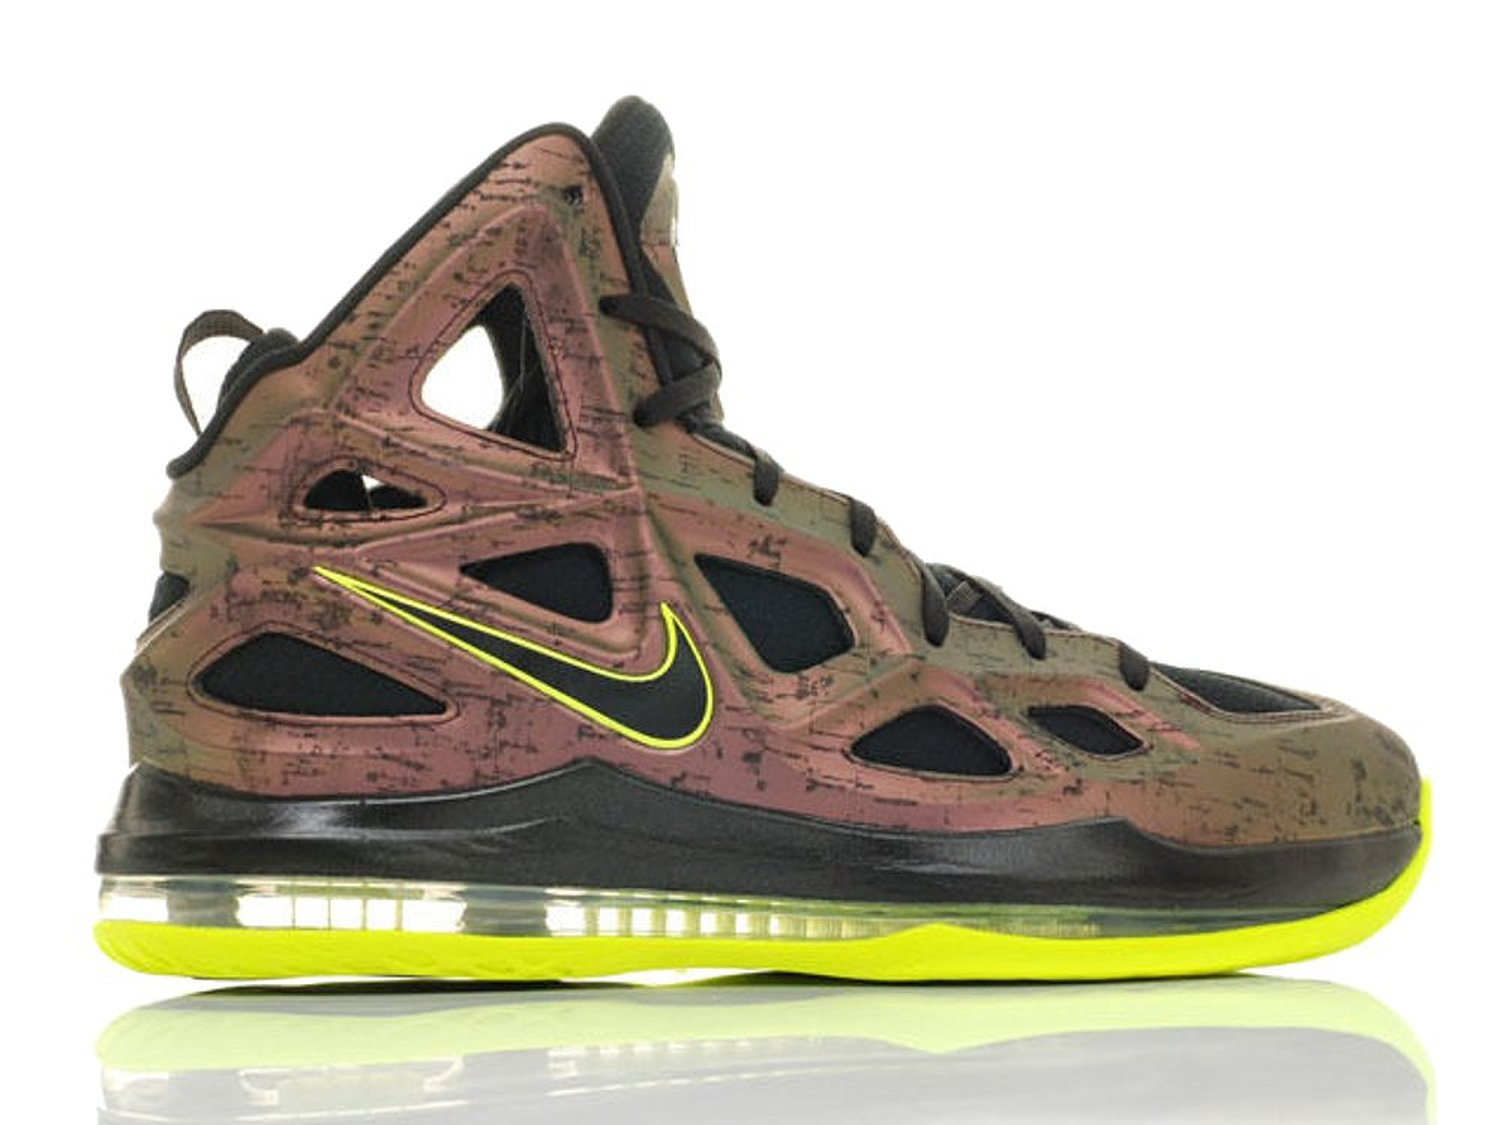 low priced ed85a bd1f4 Get Quotations · Nike Mens Air Zoom Hyperposite Dark Copper Black Volt  Basketball Shoes (653466-607)